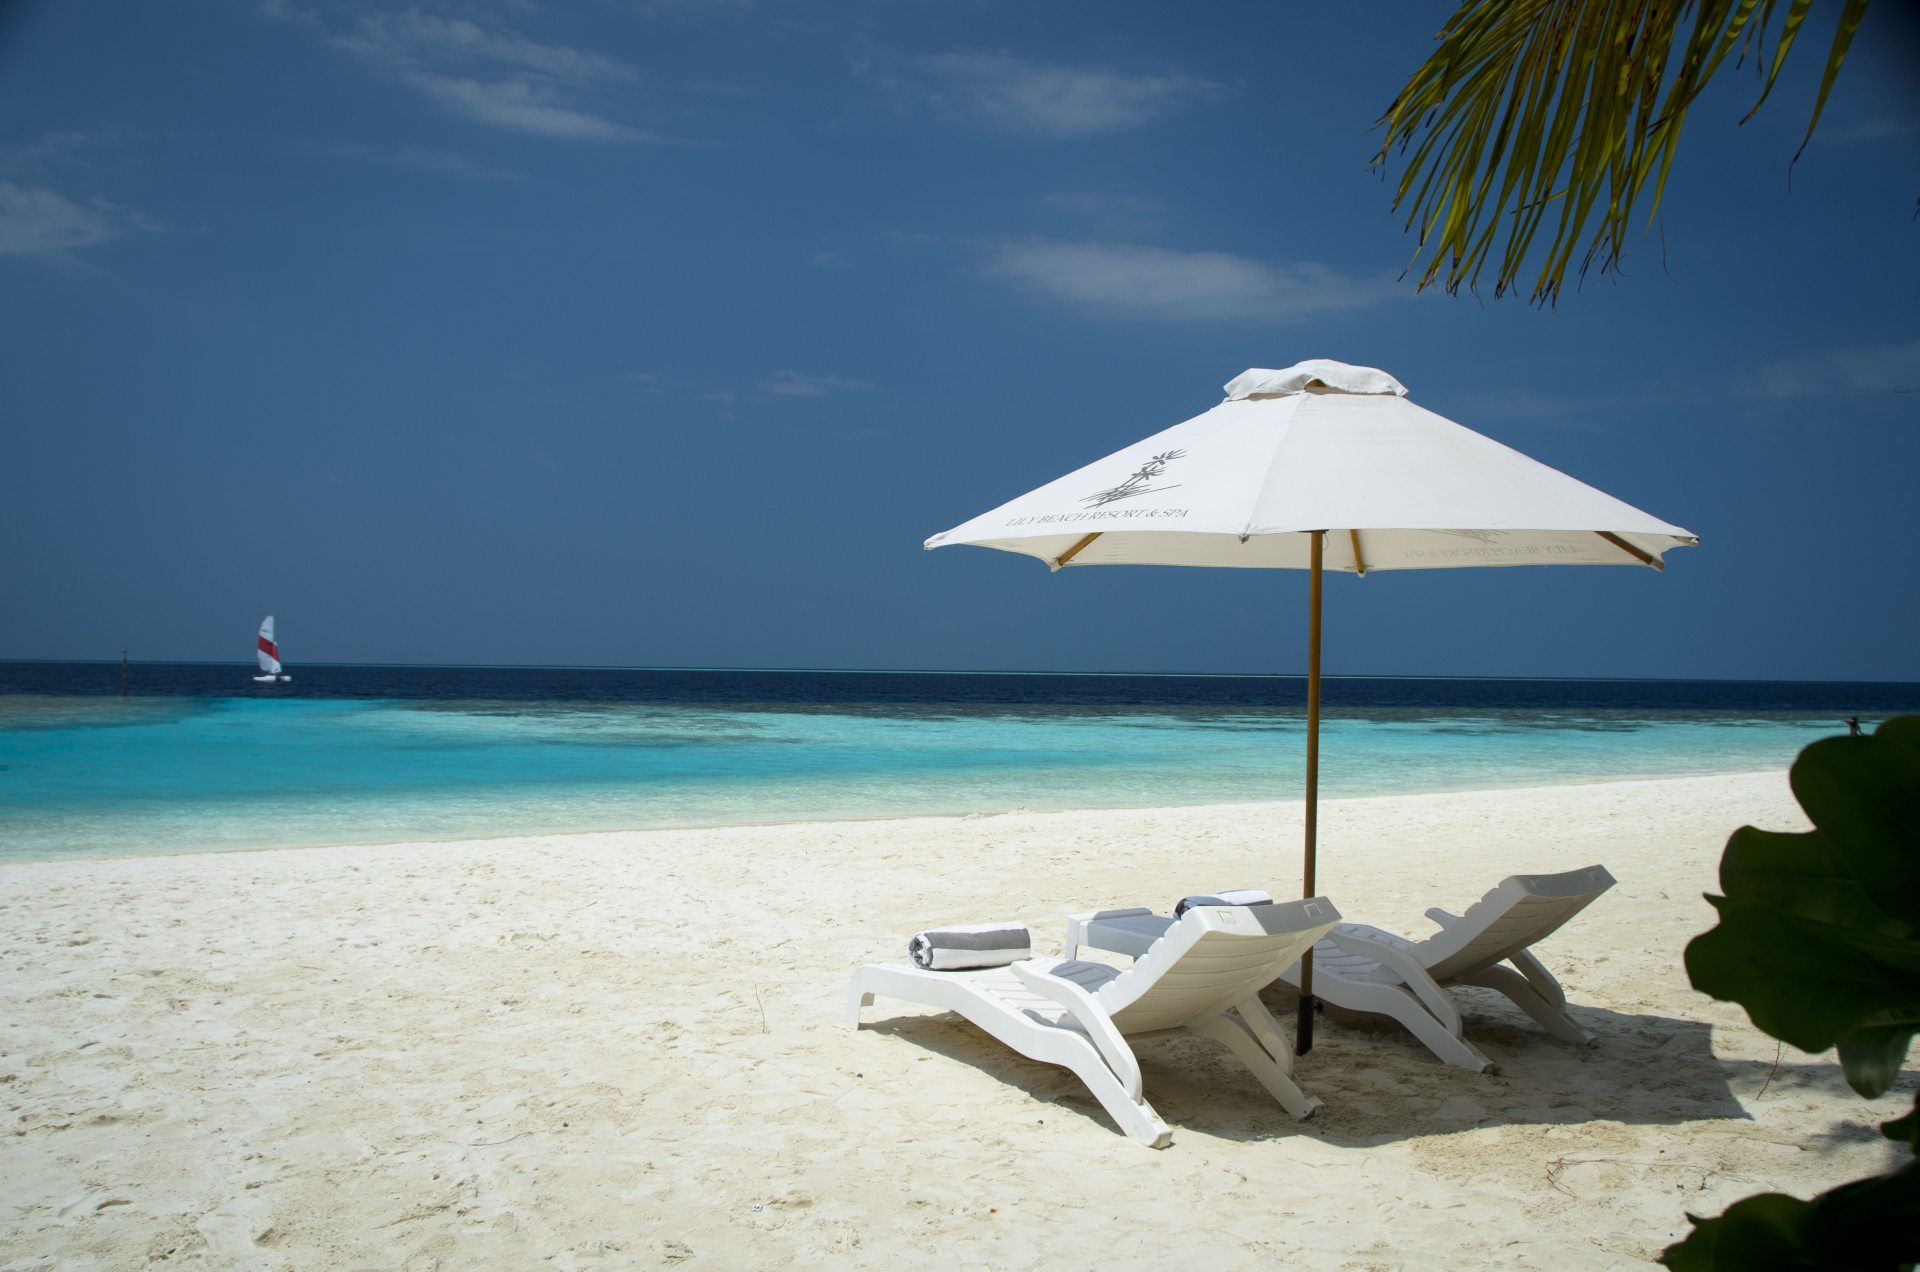 Beach chair and umbrella wallpaper - Beach Chair Pictures Hd Wallpapers Lovely